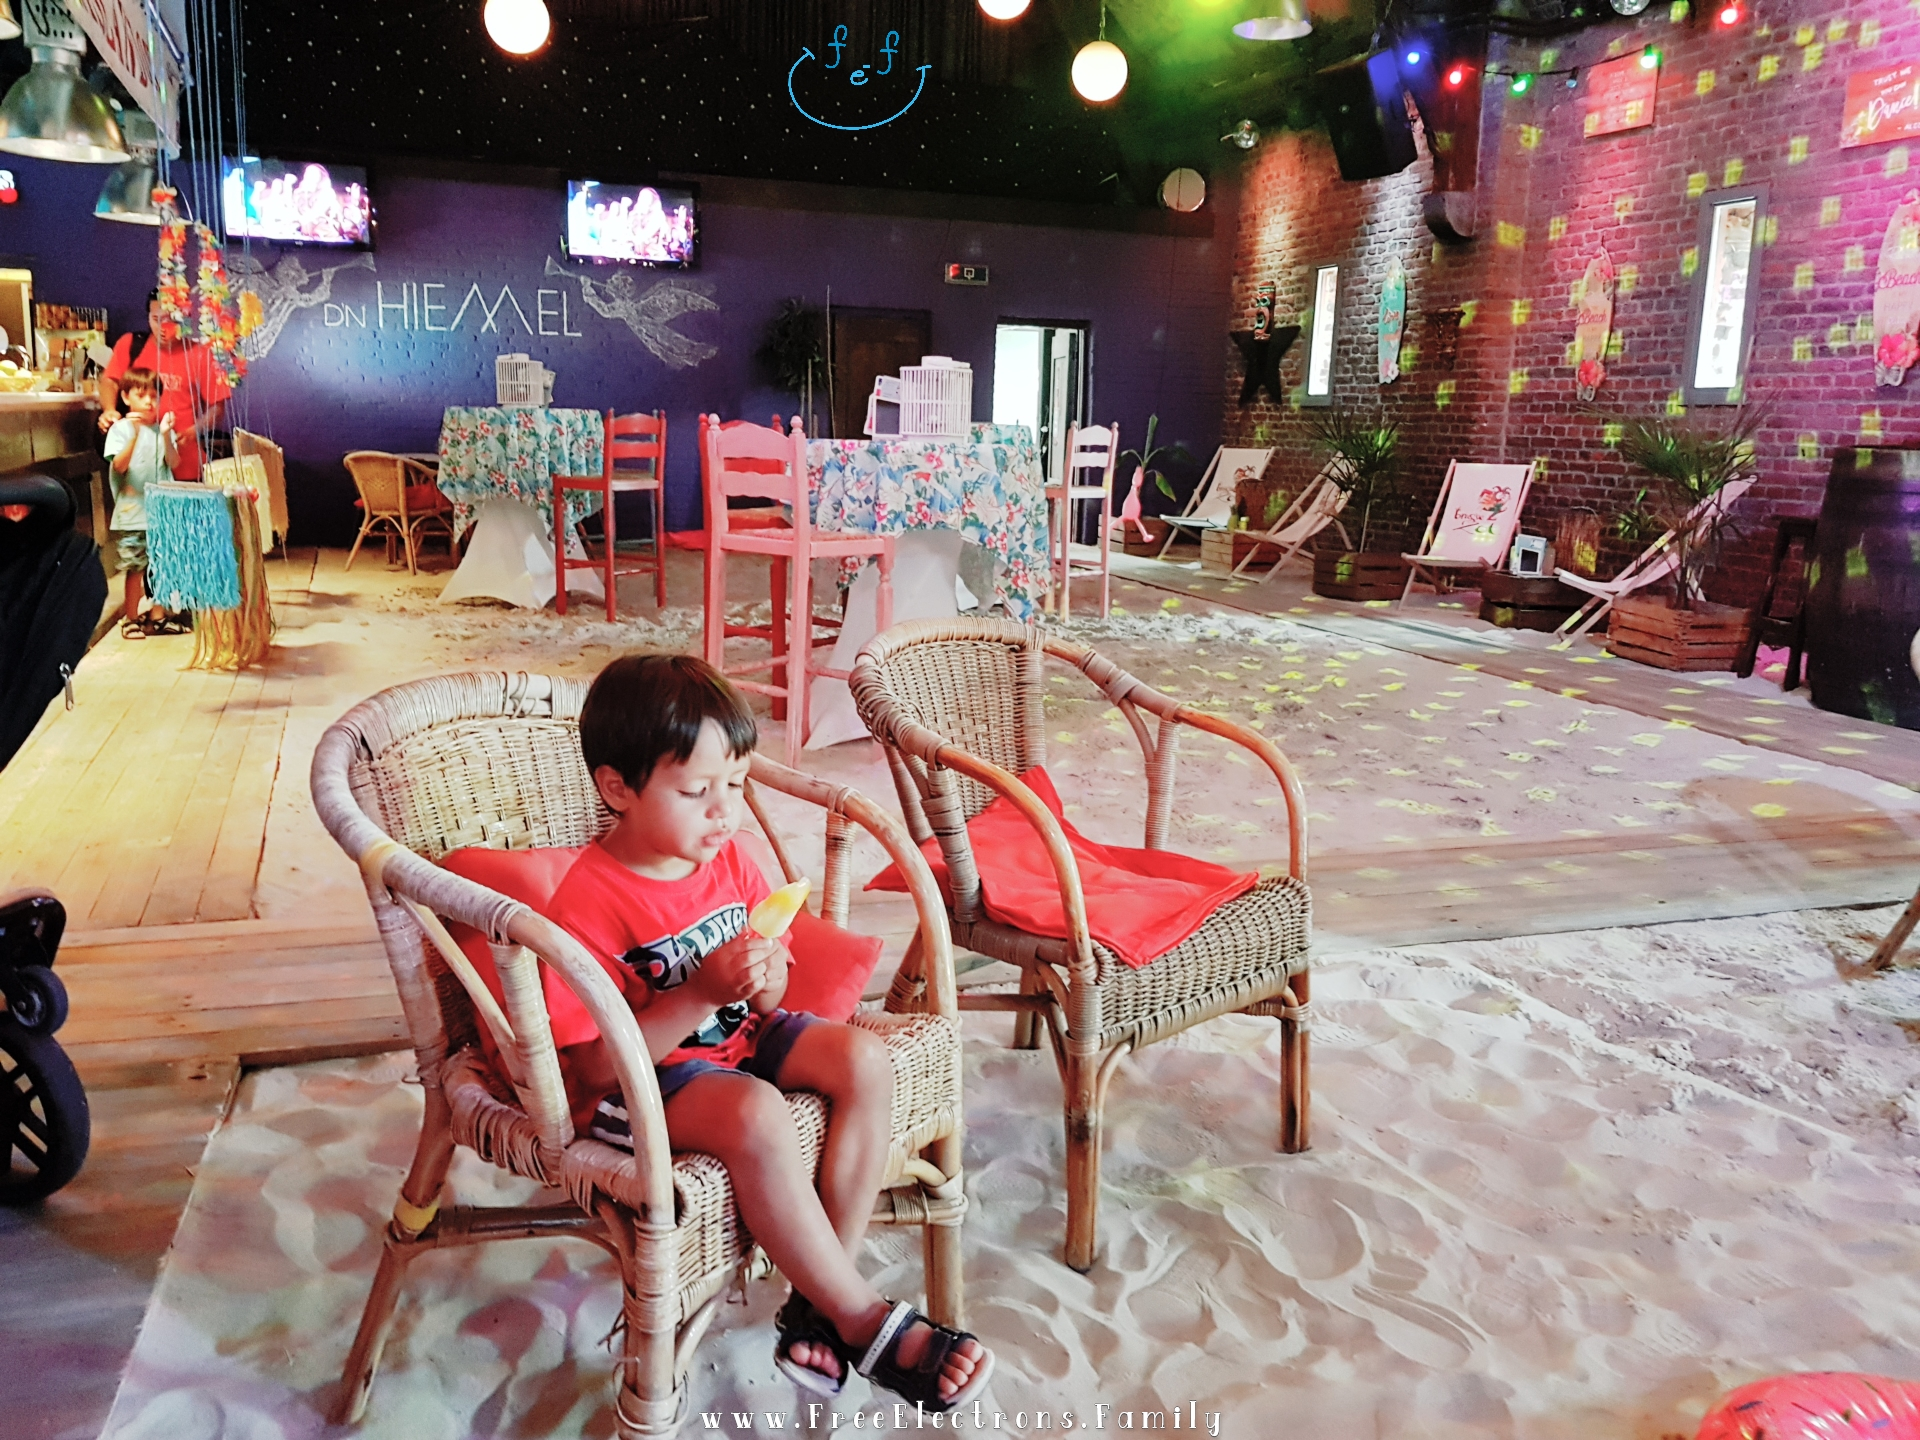 """A young child is enjoying his ice cream in a beach-themed deck/patio bar called """"D'n Hiemel"""".  #FreeElectrons.Family - camping road trip Europe Maastricht"""